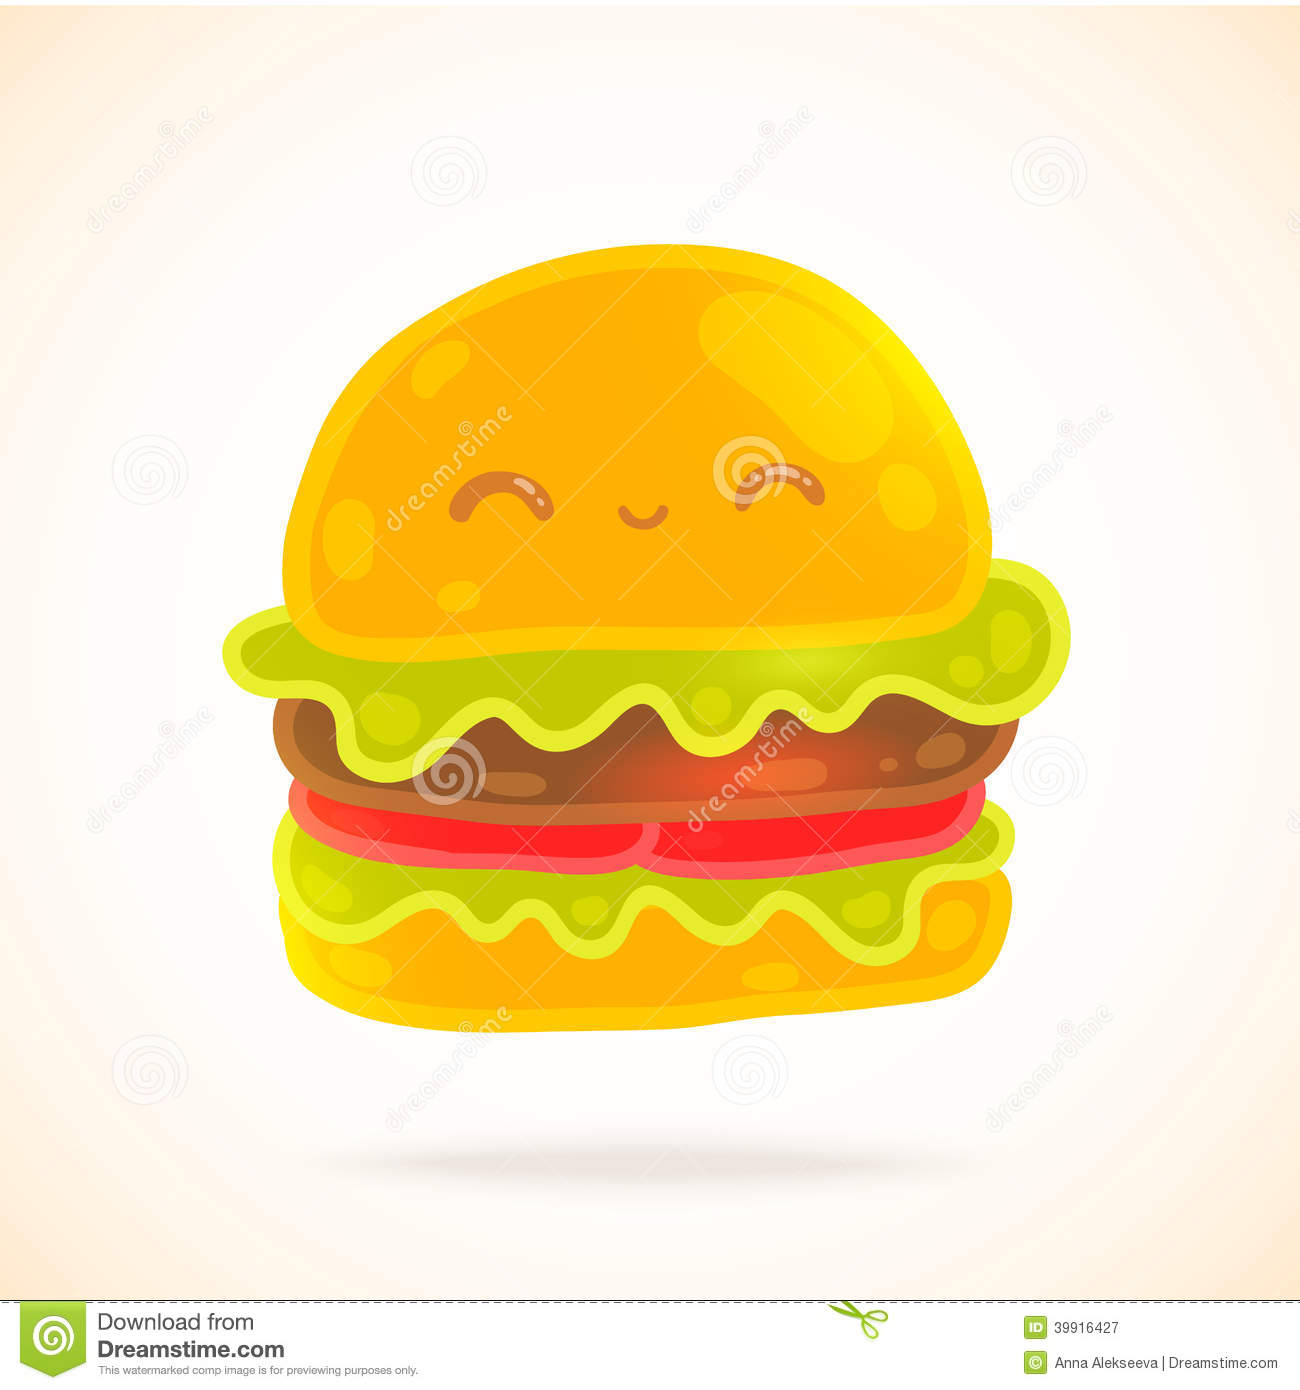 Cute Funny Cartoon Hamburger With Eyes, Smiling. Stock Vector - Image ...